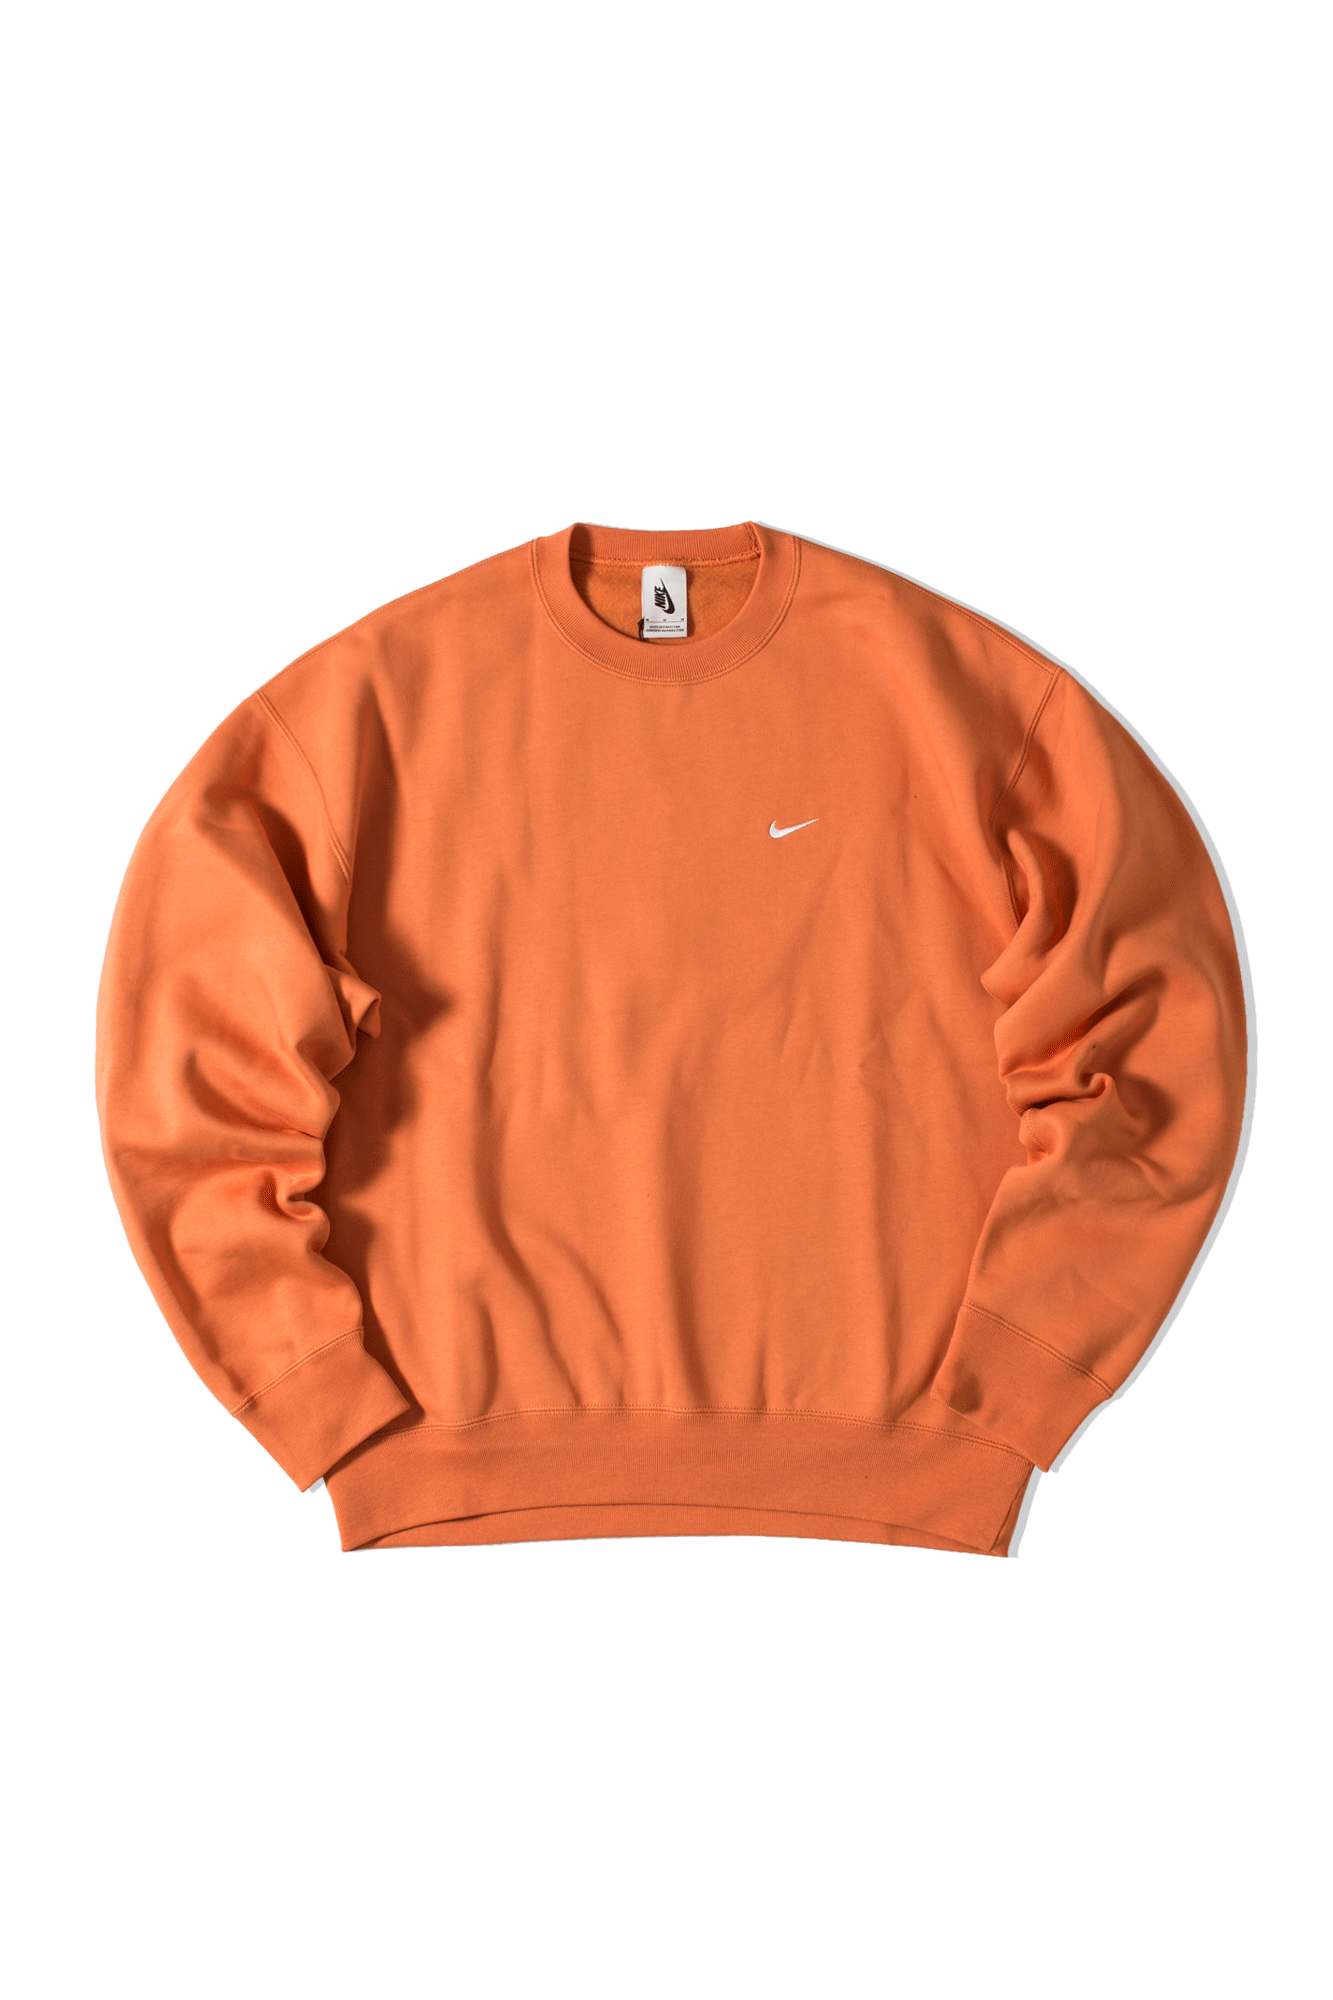 M Nrg Crewneck Sweatshirt Fleece Orange